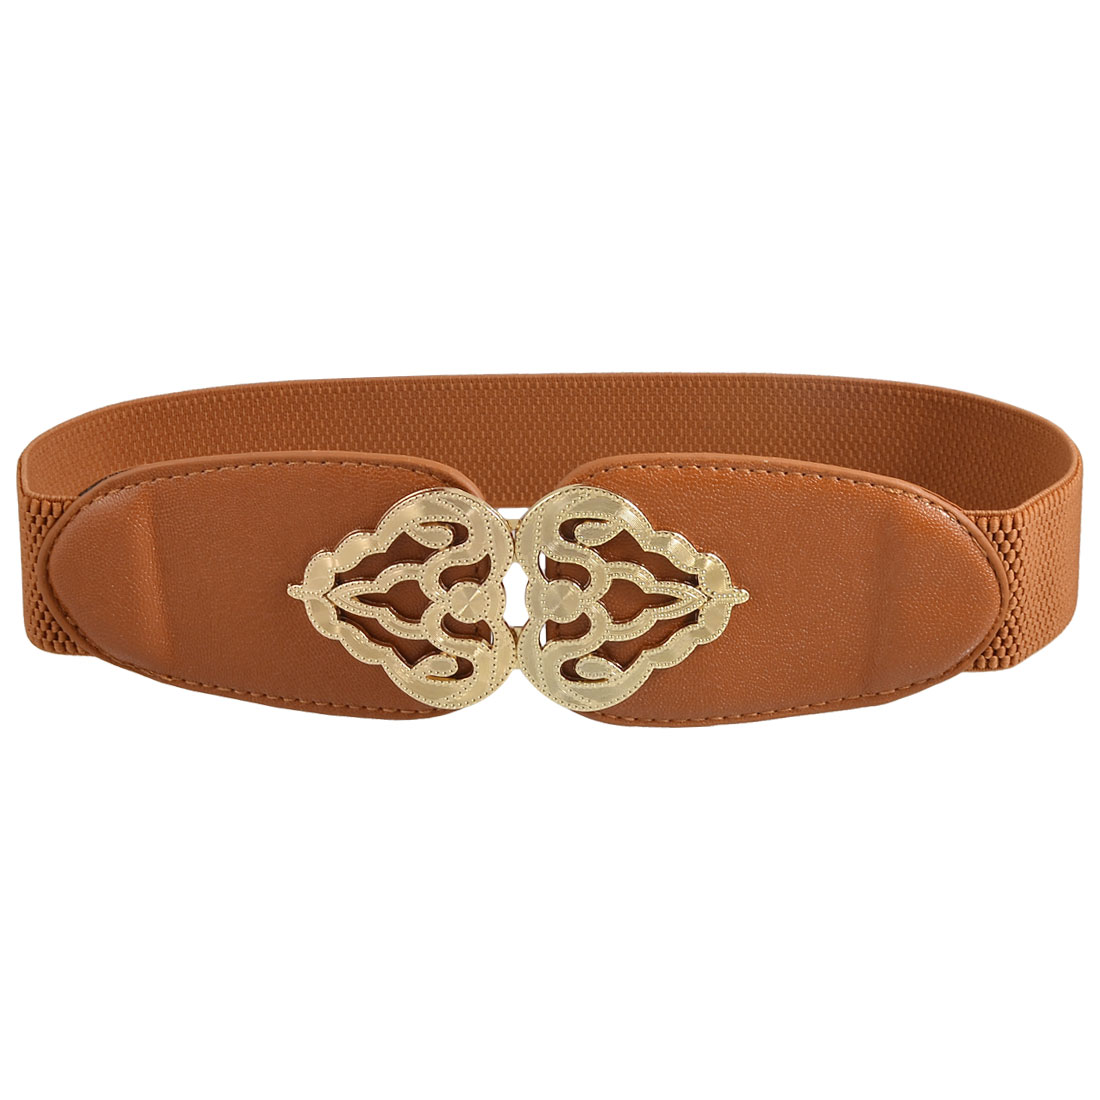 Metal Crown Shape Detailing Clasp Buckle Brown Stretchy Cinch Belt